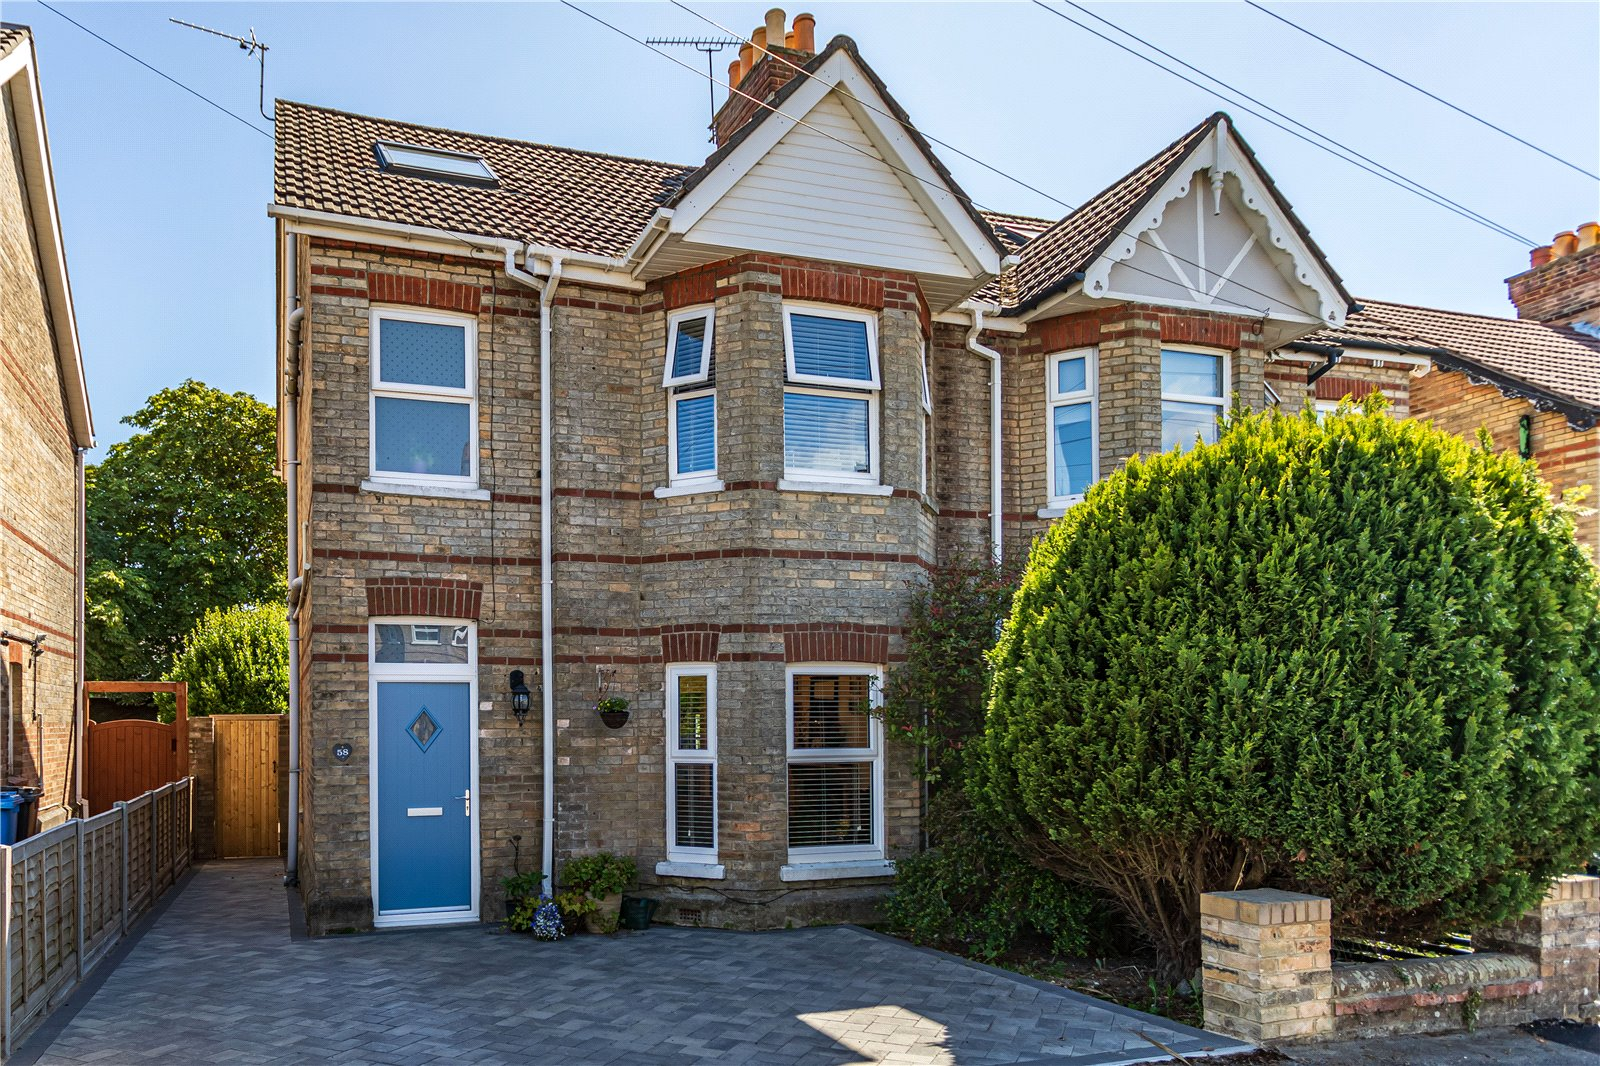 3 bed house for sale in Belmont Road, Lower Parkstone, BH14